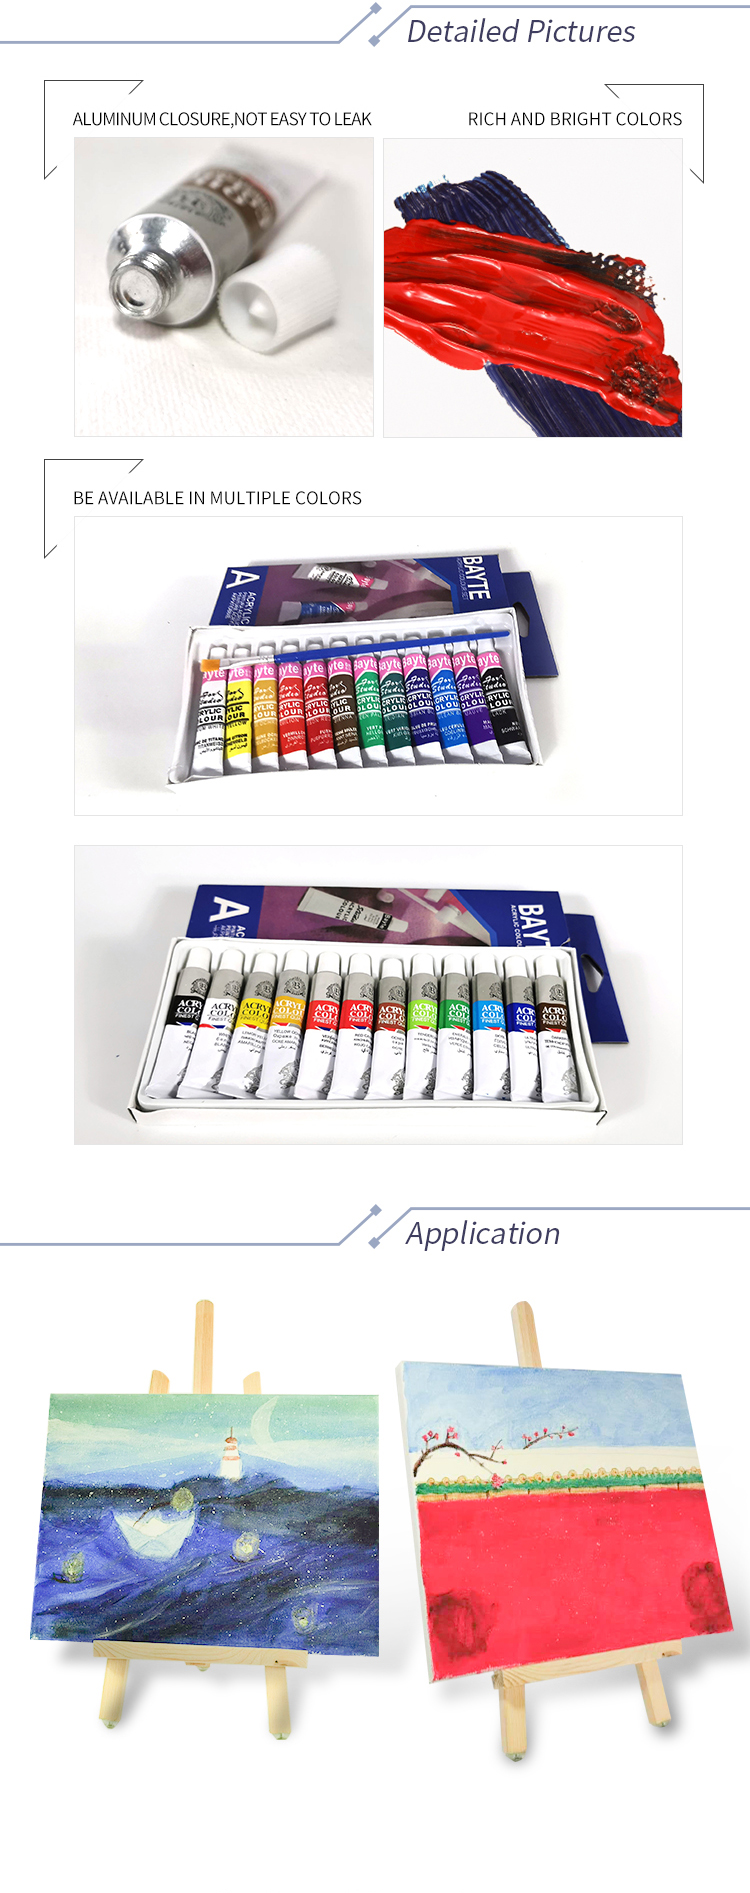 Wholesale Nice Price Acrylic Paint Colors Set, Custom Printed Wholesale Colored Acrylic